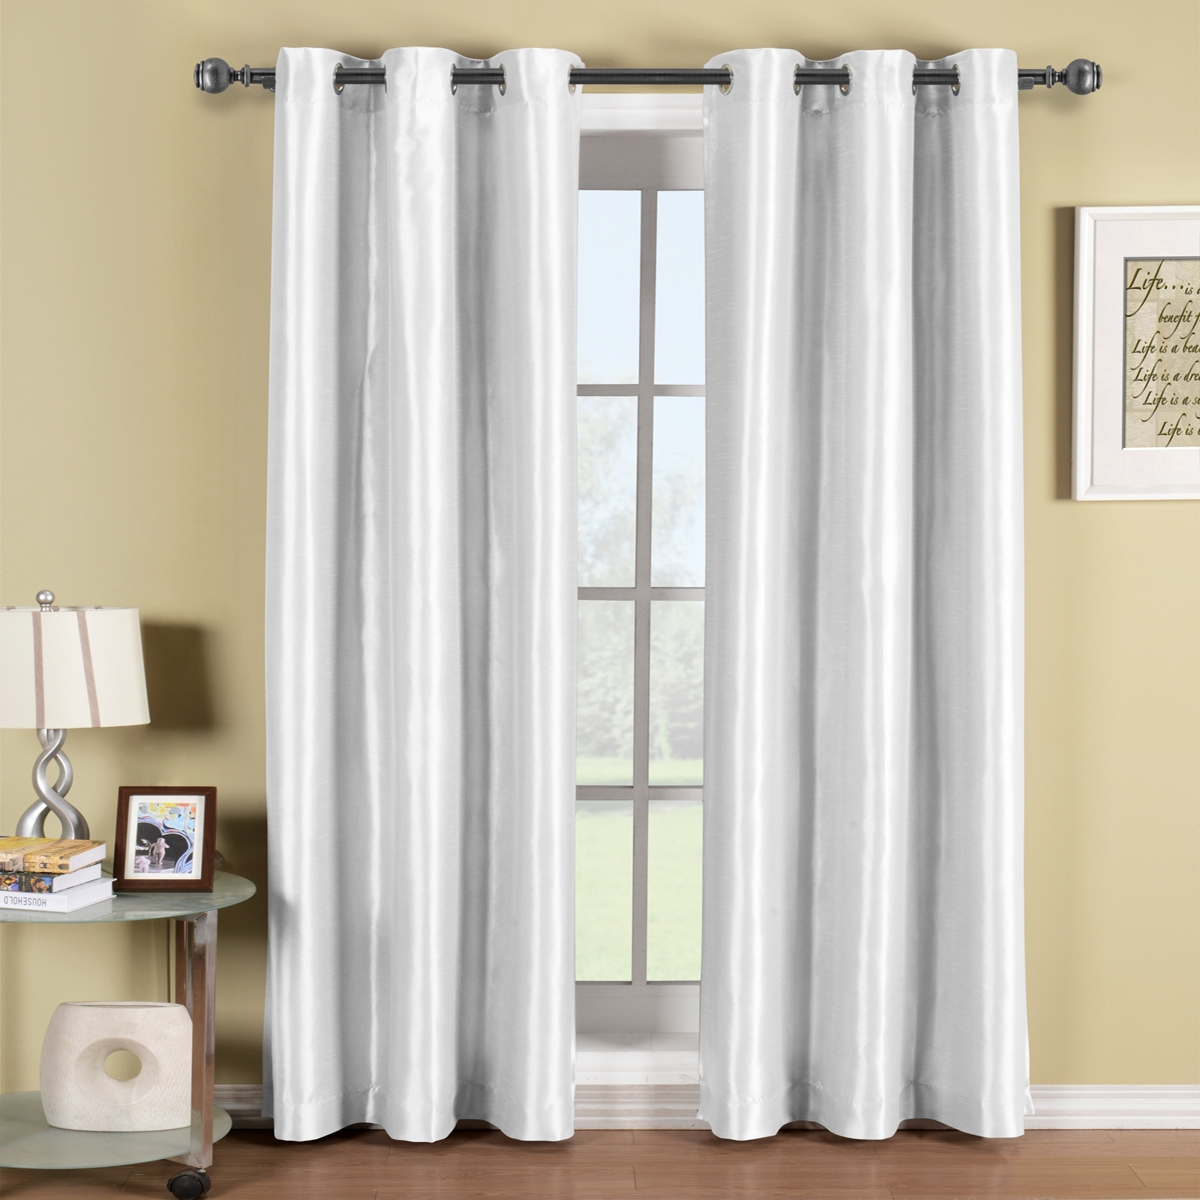 White Thermal Curtains 84 Best Curtains 2017 Throughout White Thermal Curtains (View 3 of 15)